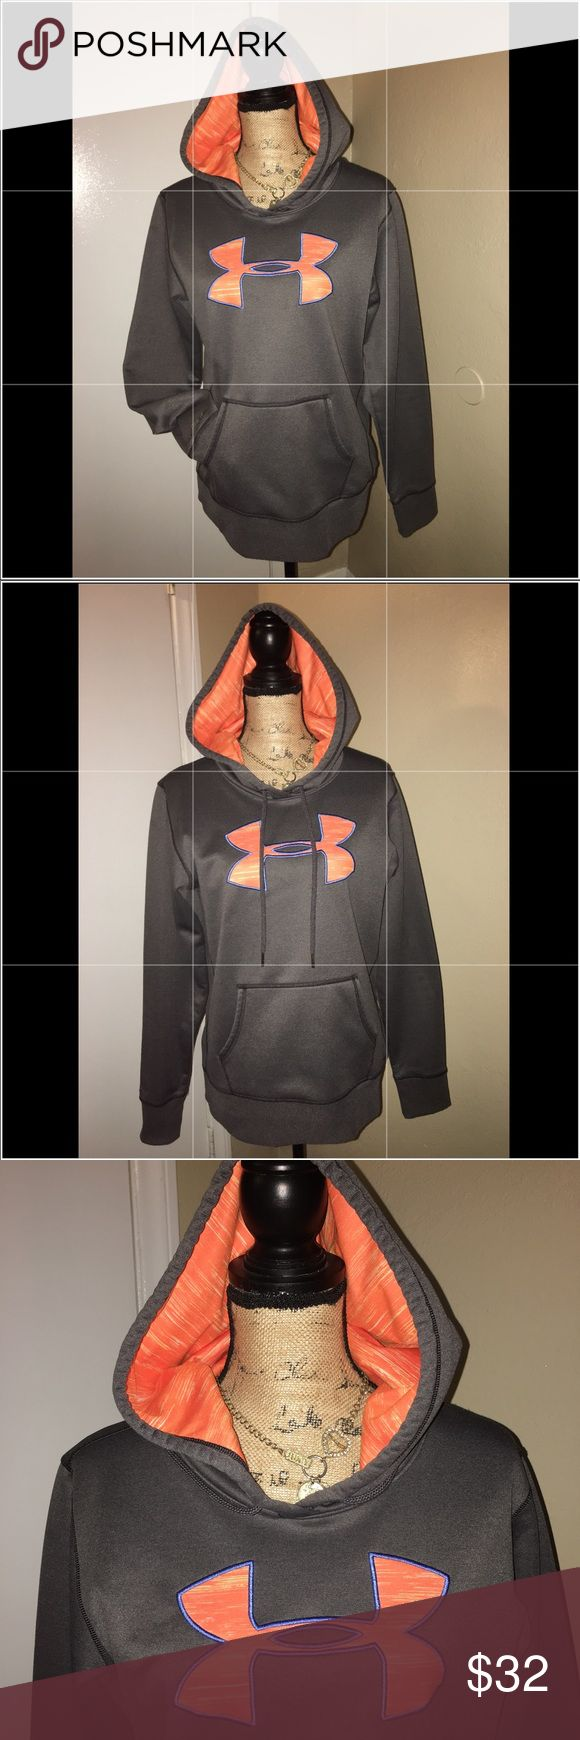 New Under Armour Women's Hoodie Sweater Brand New (Nwot) - Flawless! Under Armour Storm 1  - Hoodie / Sweater  Drawstring at neck / Pocket in front. Colors - Gray / Grey, Orange & Blue Women's/ Ladies - Size Medium M Keywords - Workout / Yoga / Fitness / Running / Jogging / Gym / Athletic / Casual  Please FOLLOW ME & check out the other items in my closet. BUNDLE & SAVE! I offer a discount when items are bundled & you only pay shipping one time!! Thank you & Happy Poshing! 🙏🏼❤️ Under…